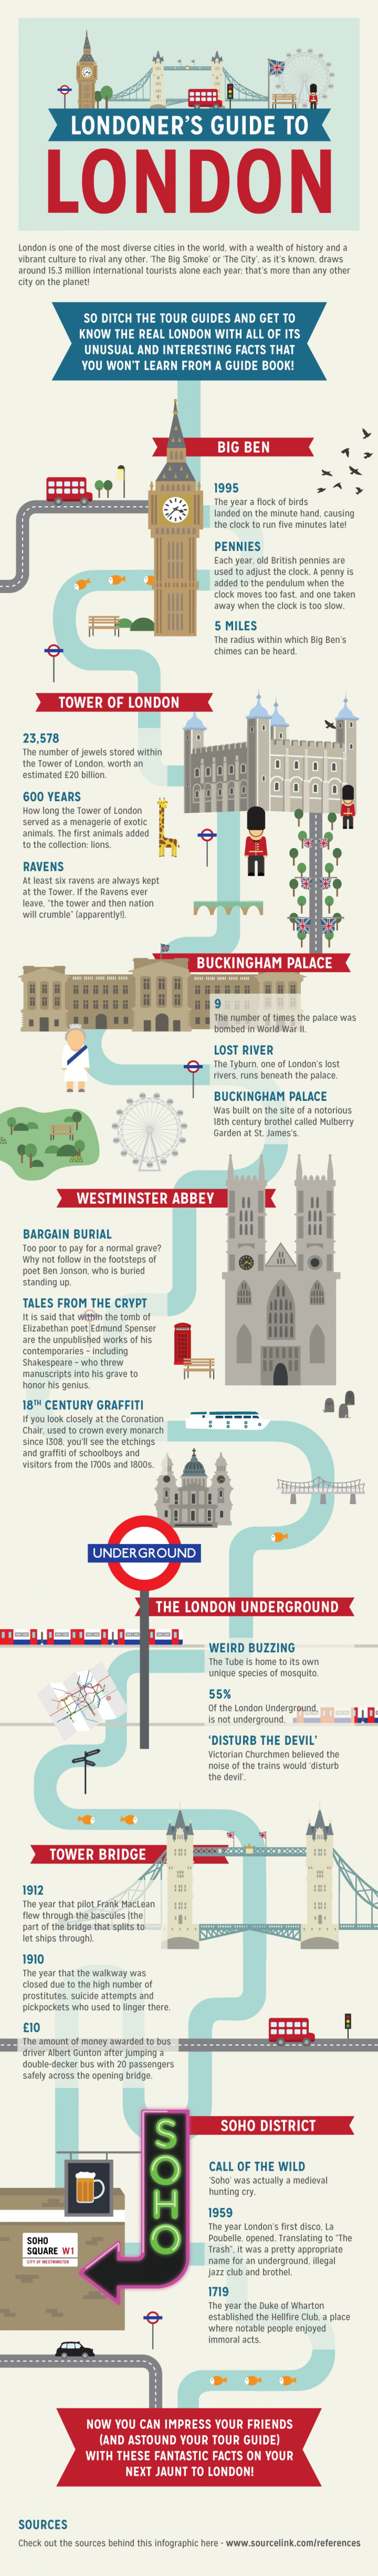 9. Londoner's Guide to London